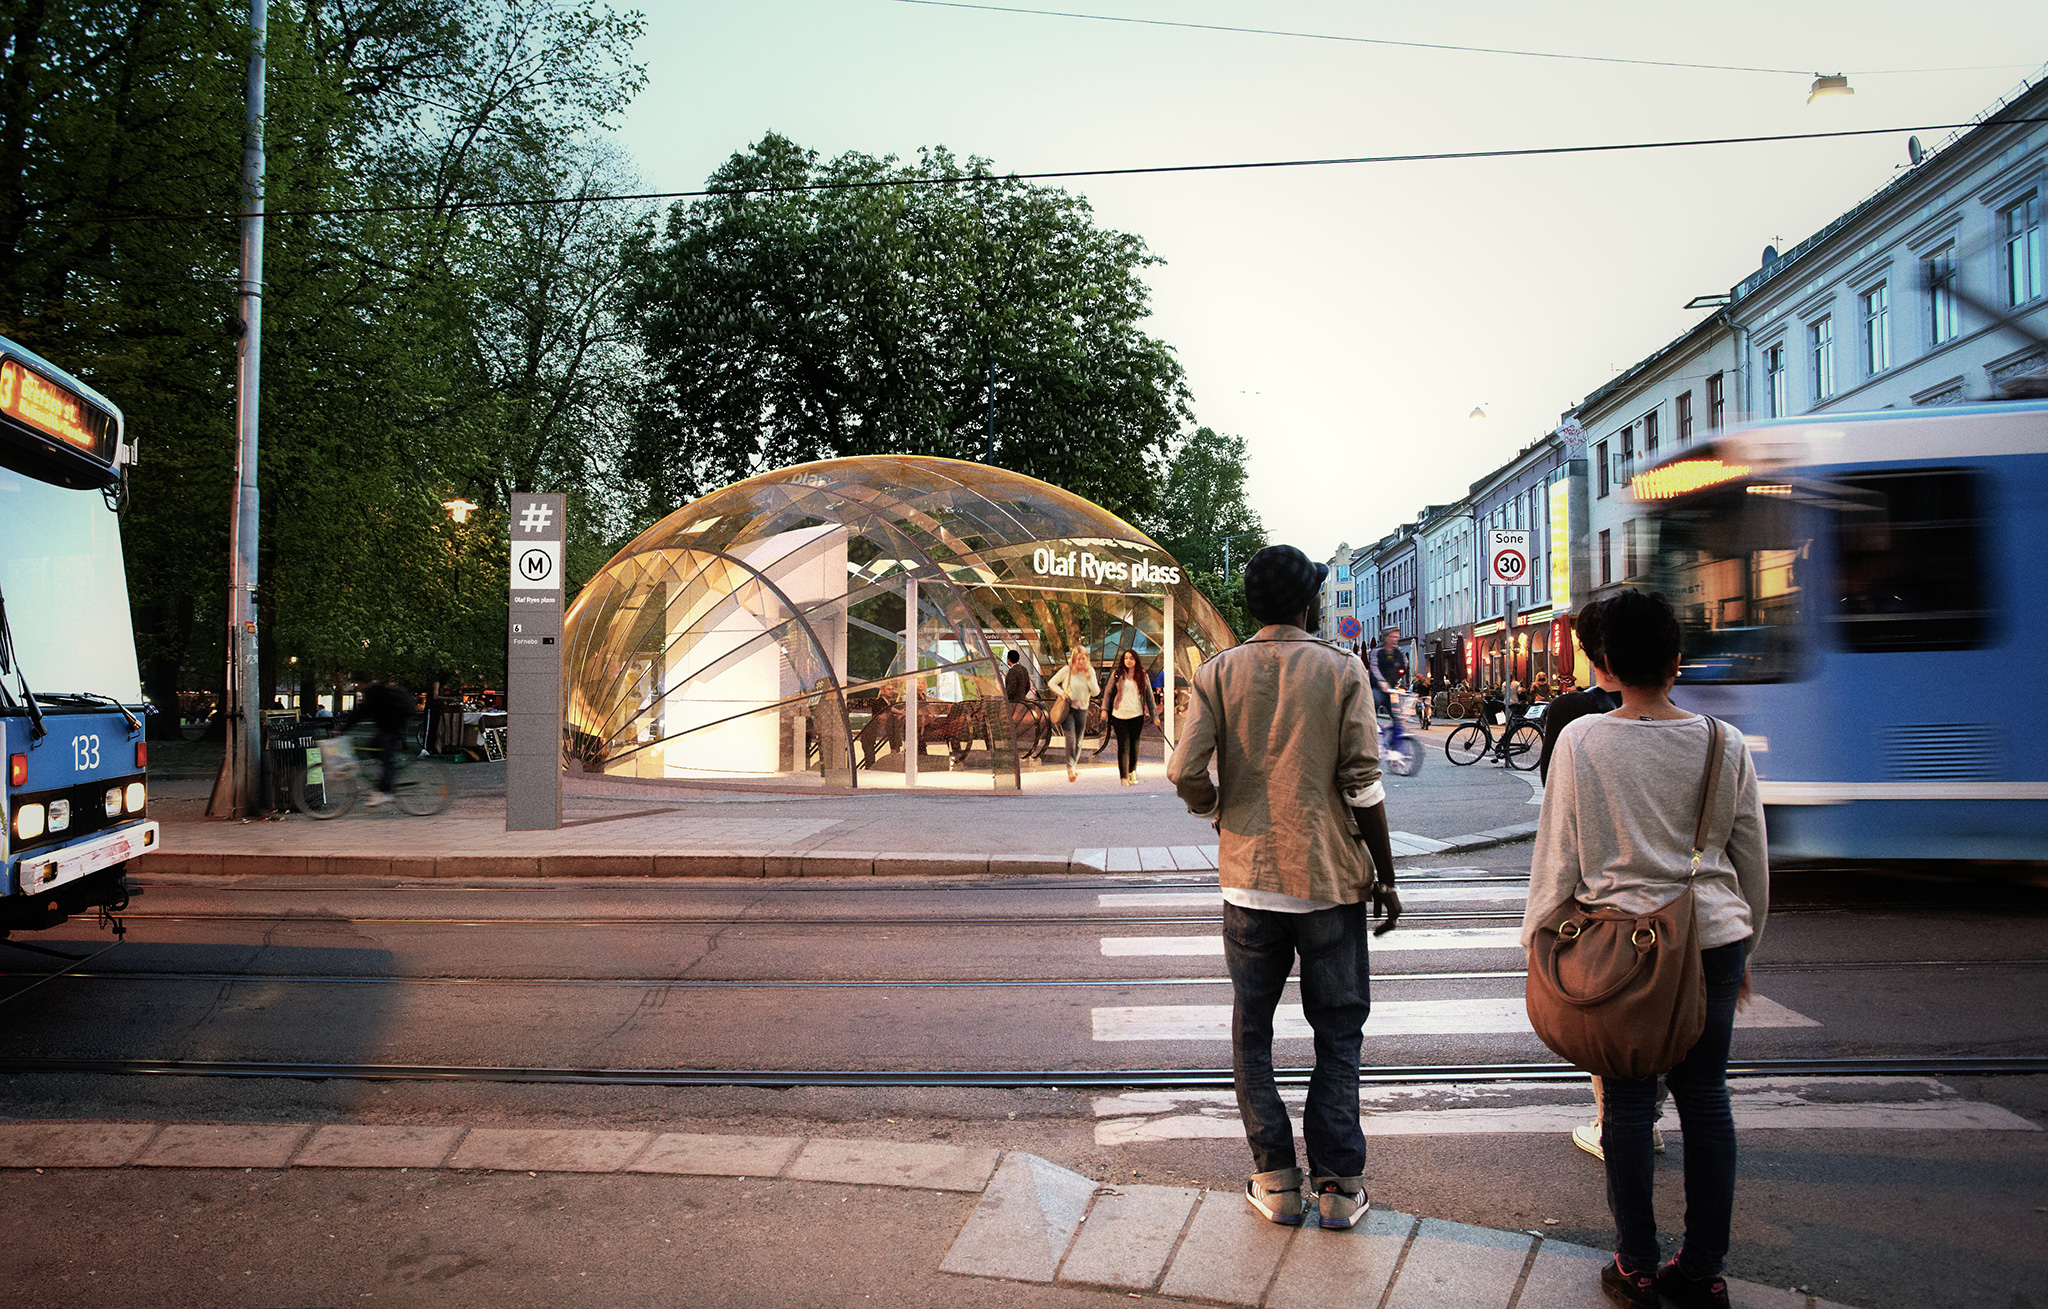 My highly speculative conceptual design and visualization for a future metro at Grunerløkka in Oslo, the casual every-day story contrasting the once-a-year sports event portrayed in the Bislet image at the top of this post.